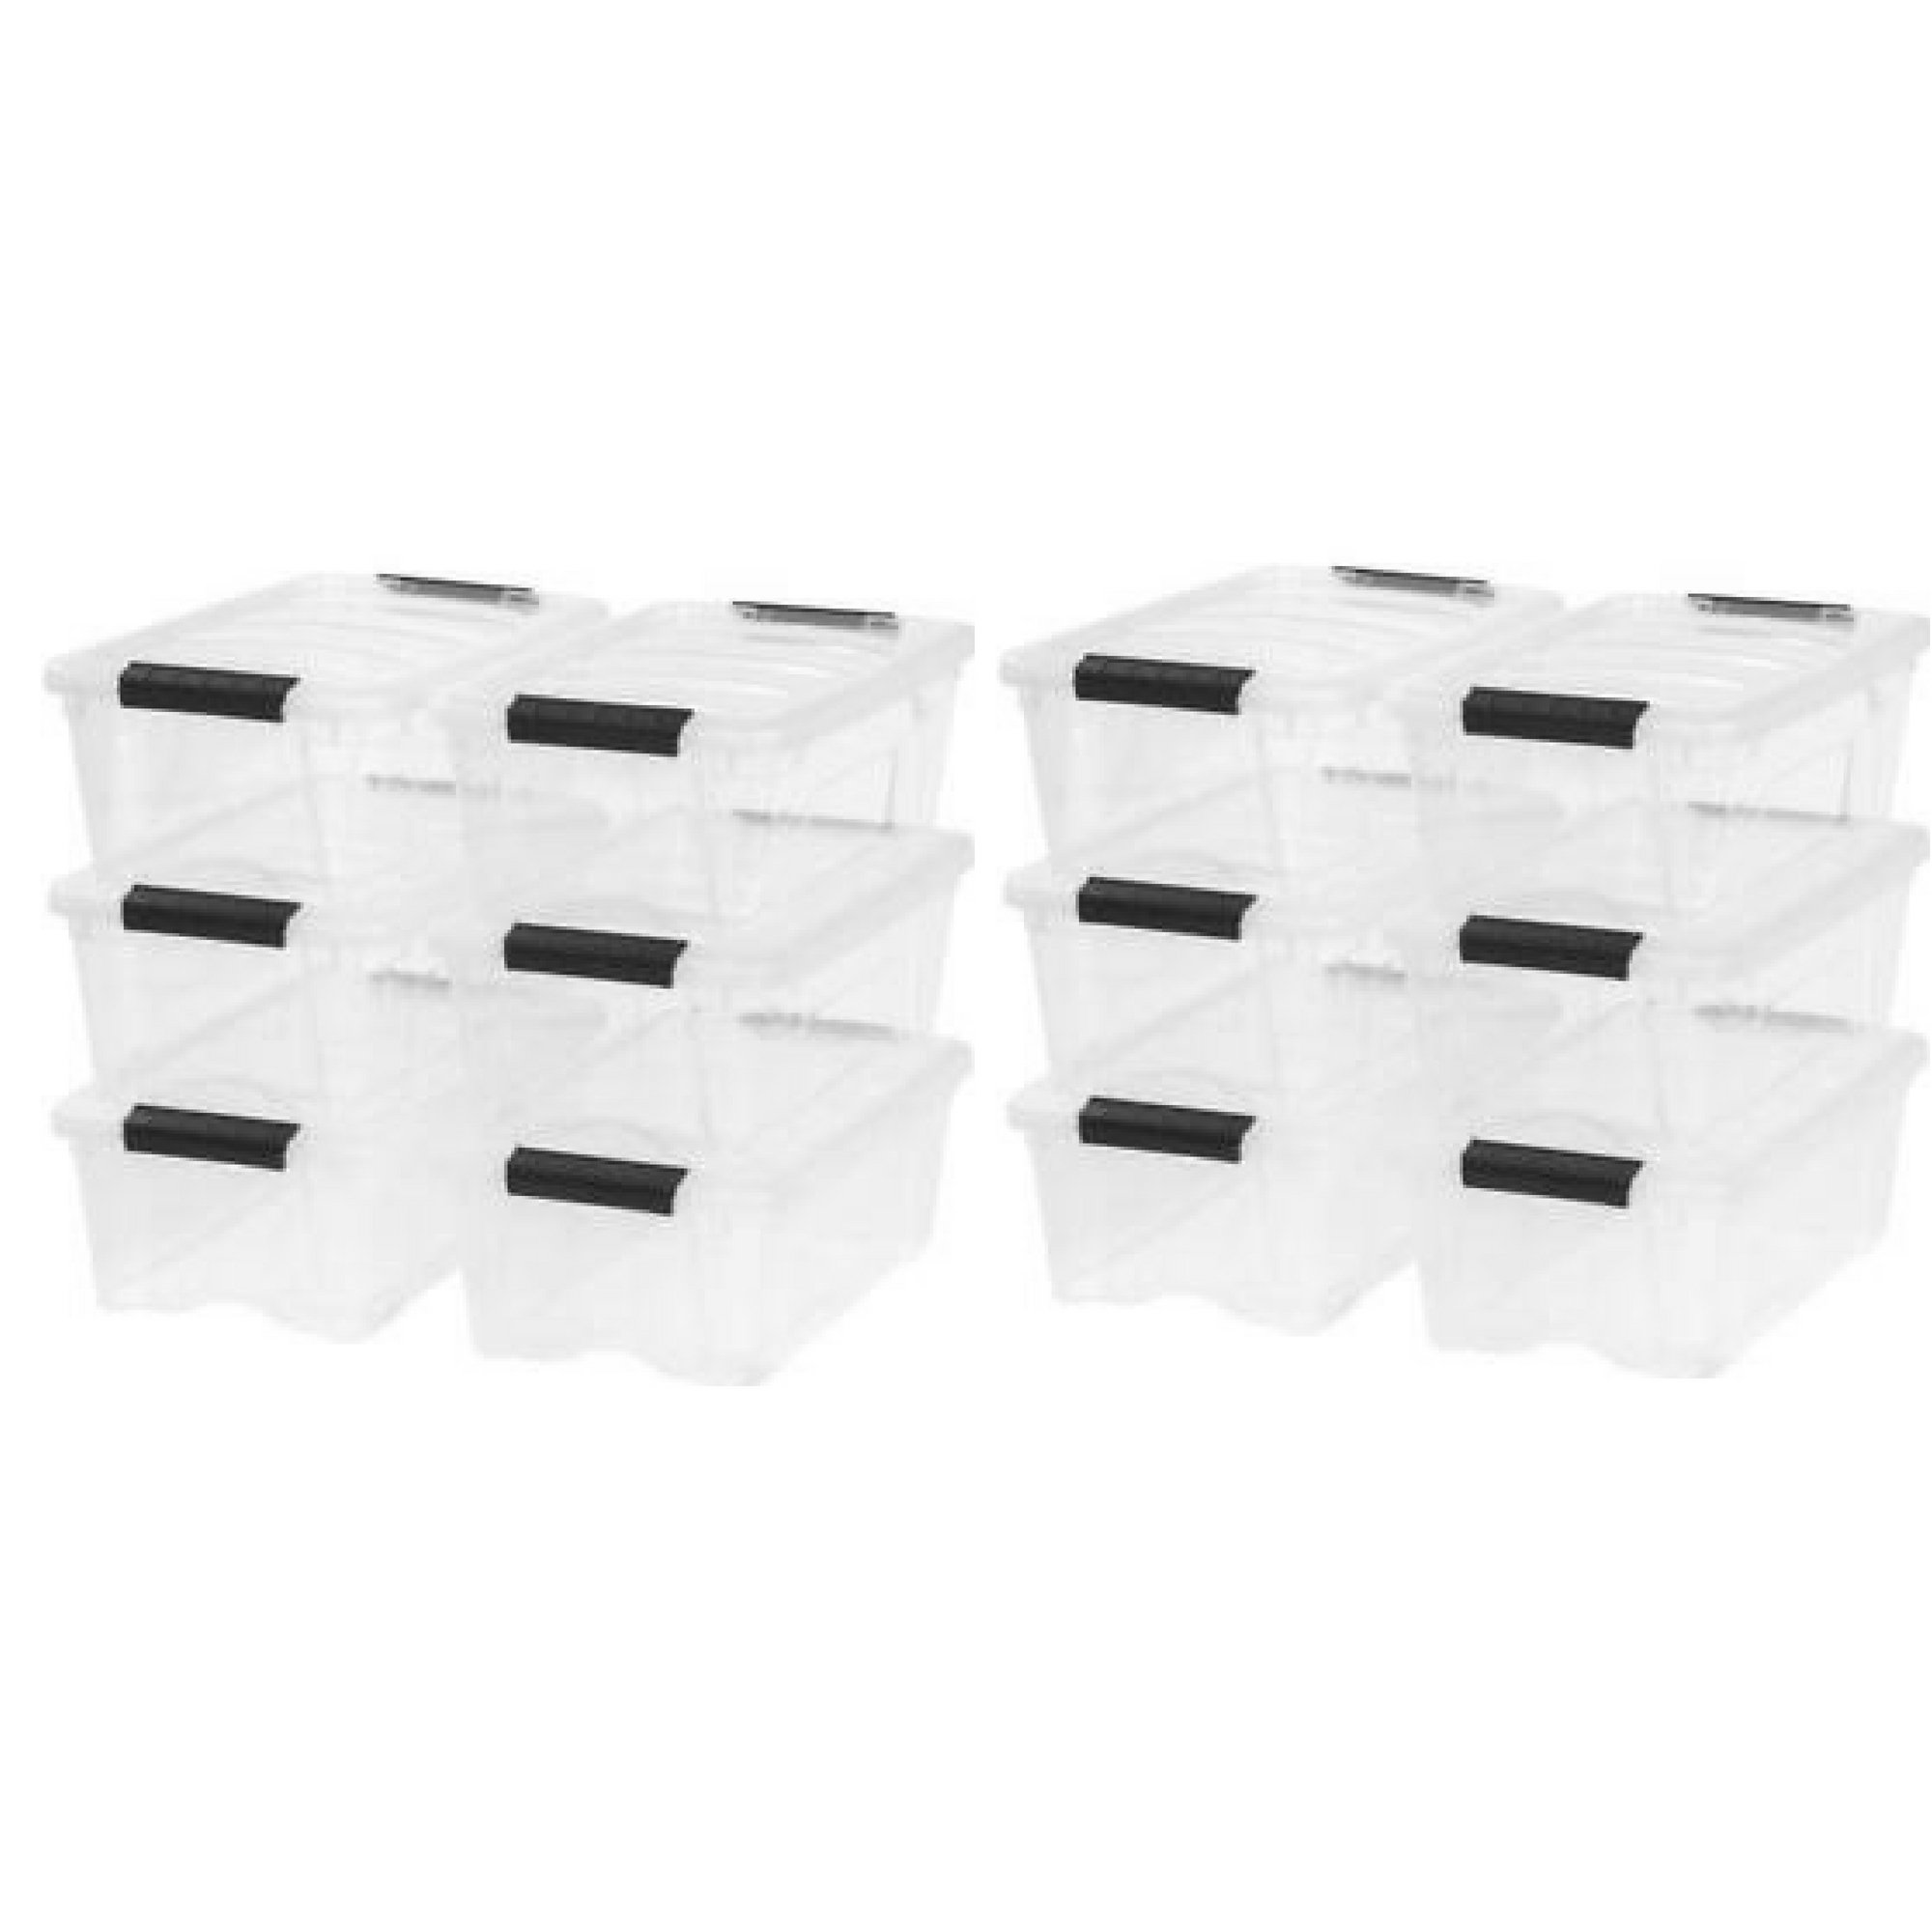 IRIS 12 Qt. Stack & Pull Plastic Storage Box, Clear Set of 12